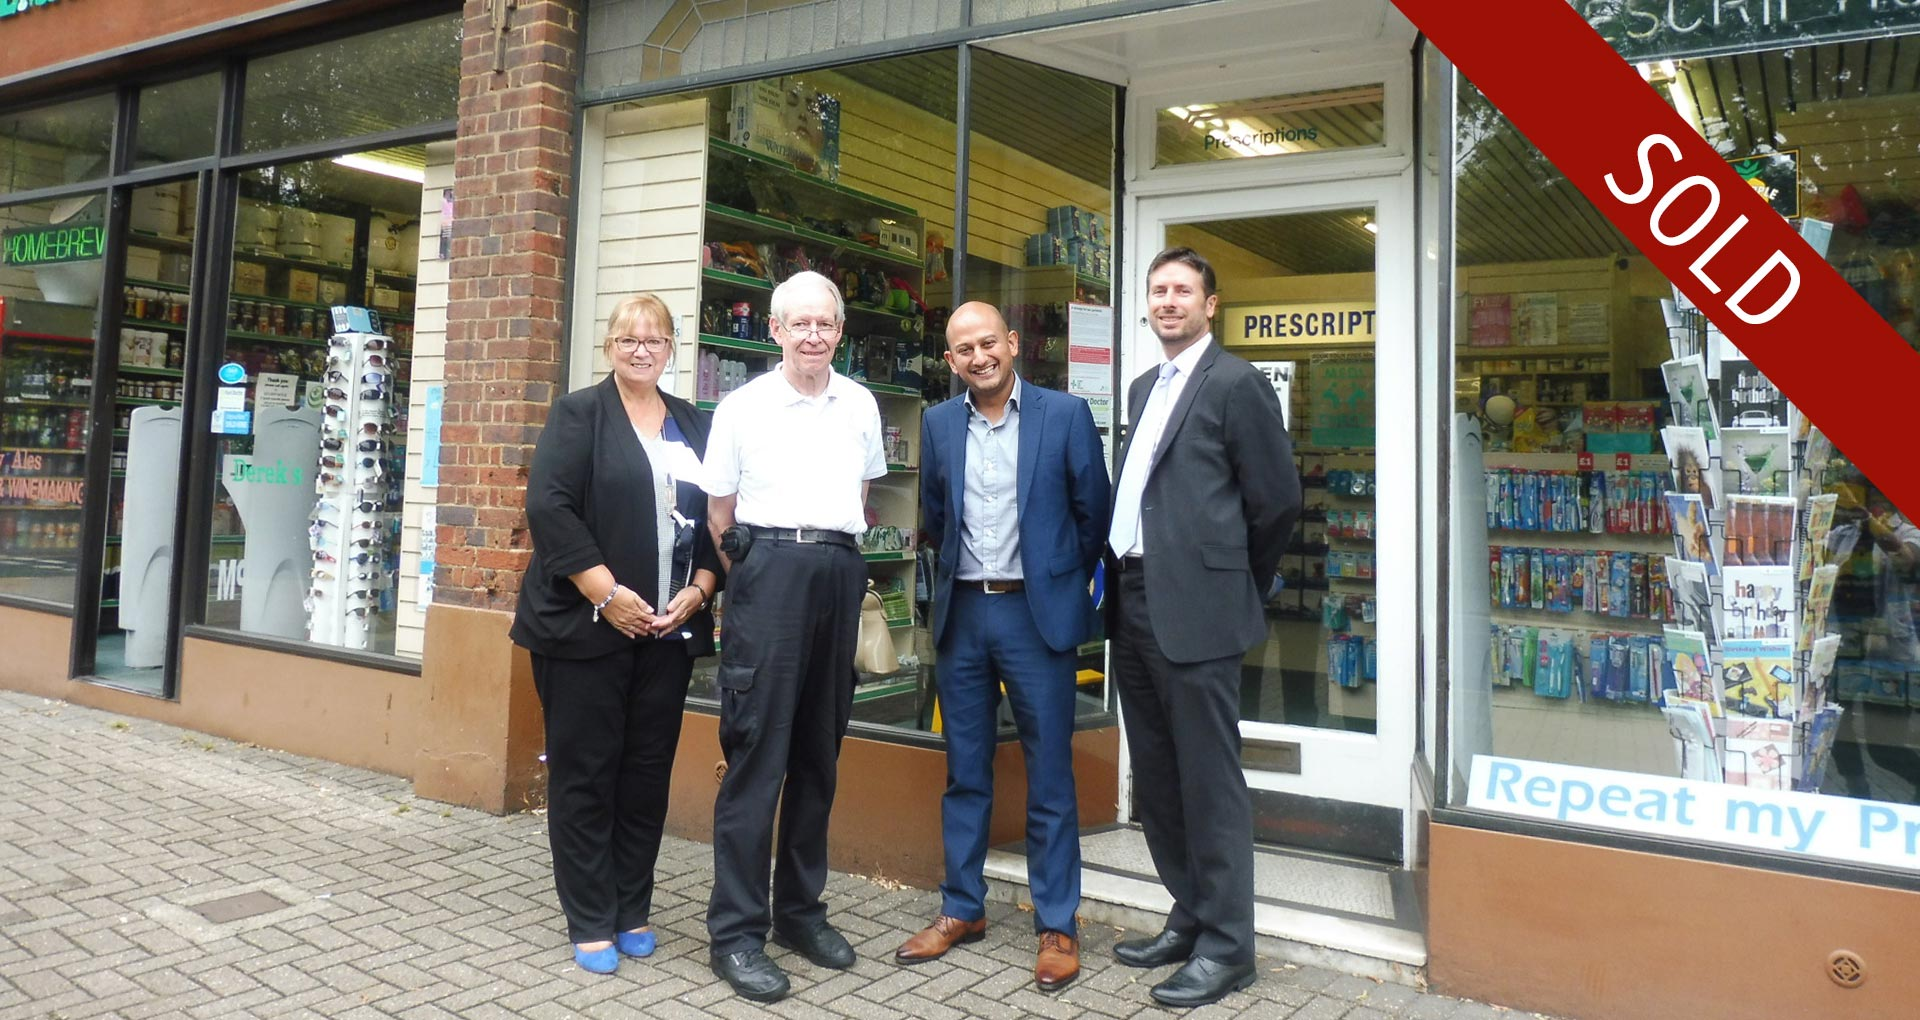 Pharmacy Sale in Hertfordshire brokered by Hutchings Consultants Ltd